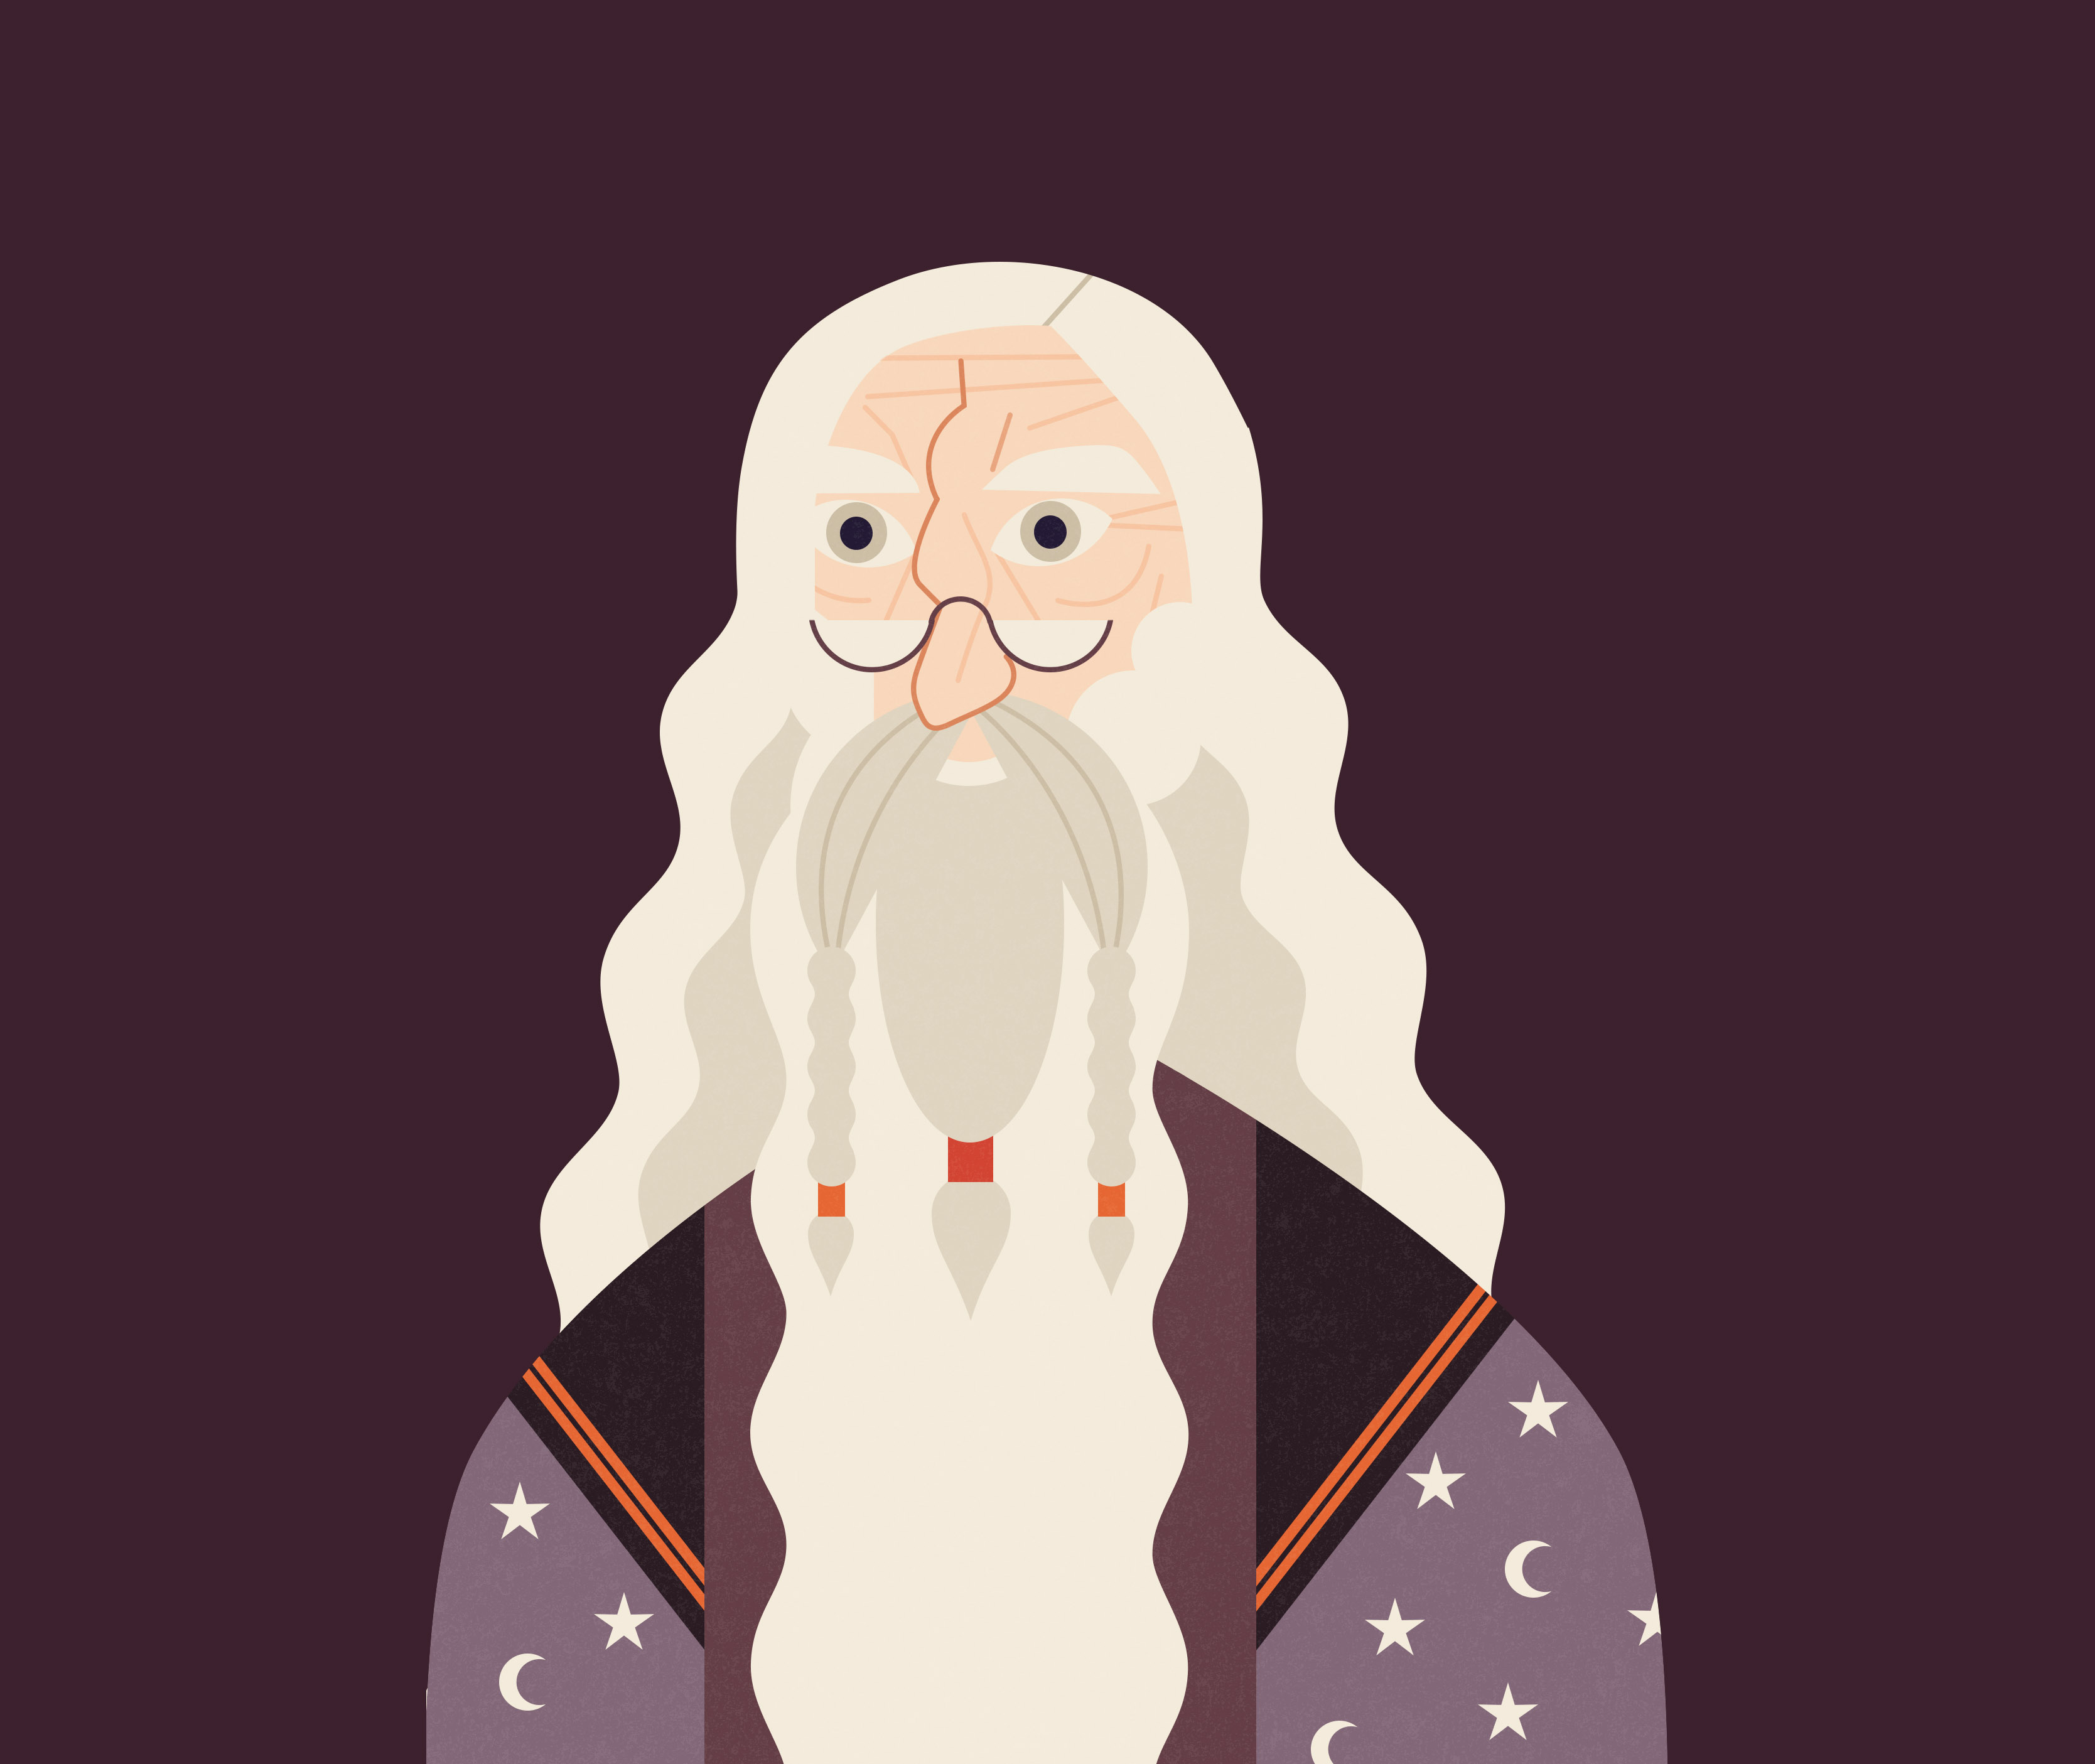 PM Albus Dumbledore illustration OOTP2 infographic